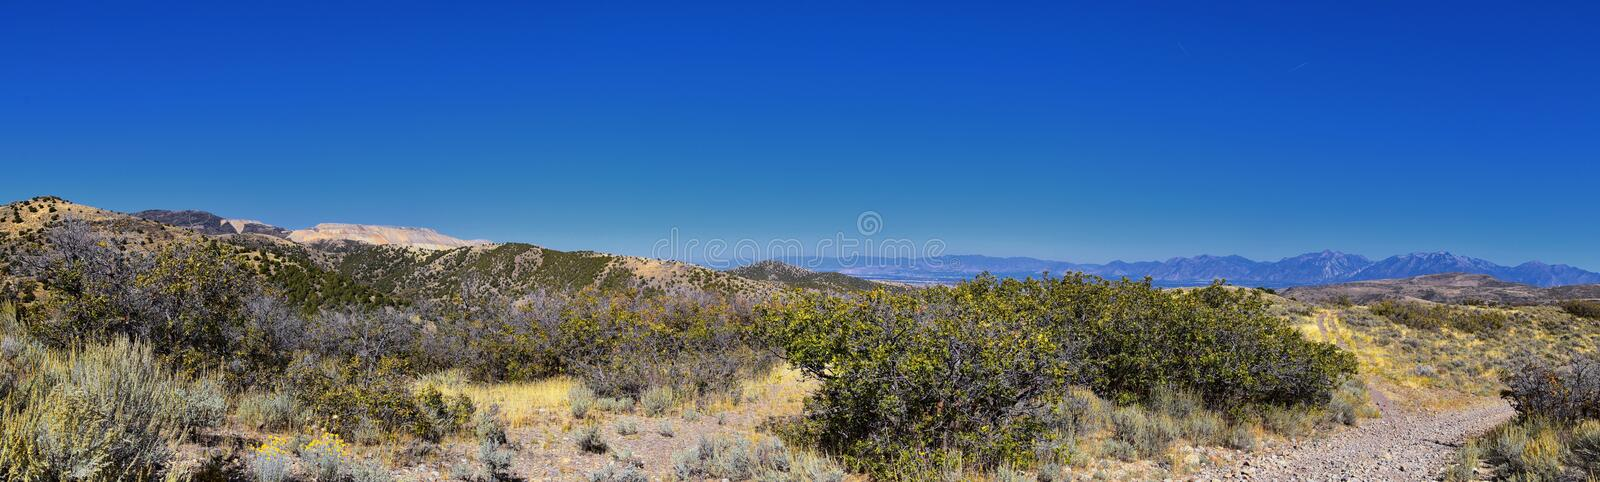 Views of Wasatch Front Rocky Mountains from the Oquirrh Mountains with fall leaves, Hiking in Yellow Fork trail Rose Canyon Utah royalty free stock images